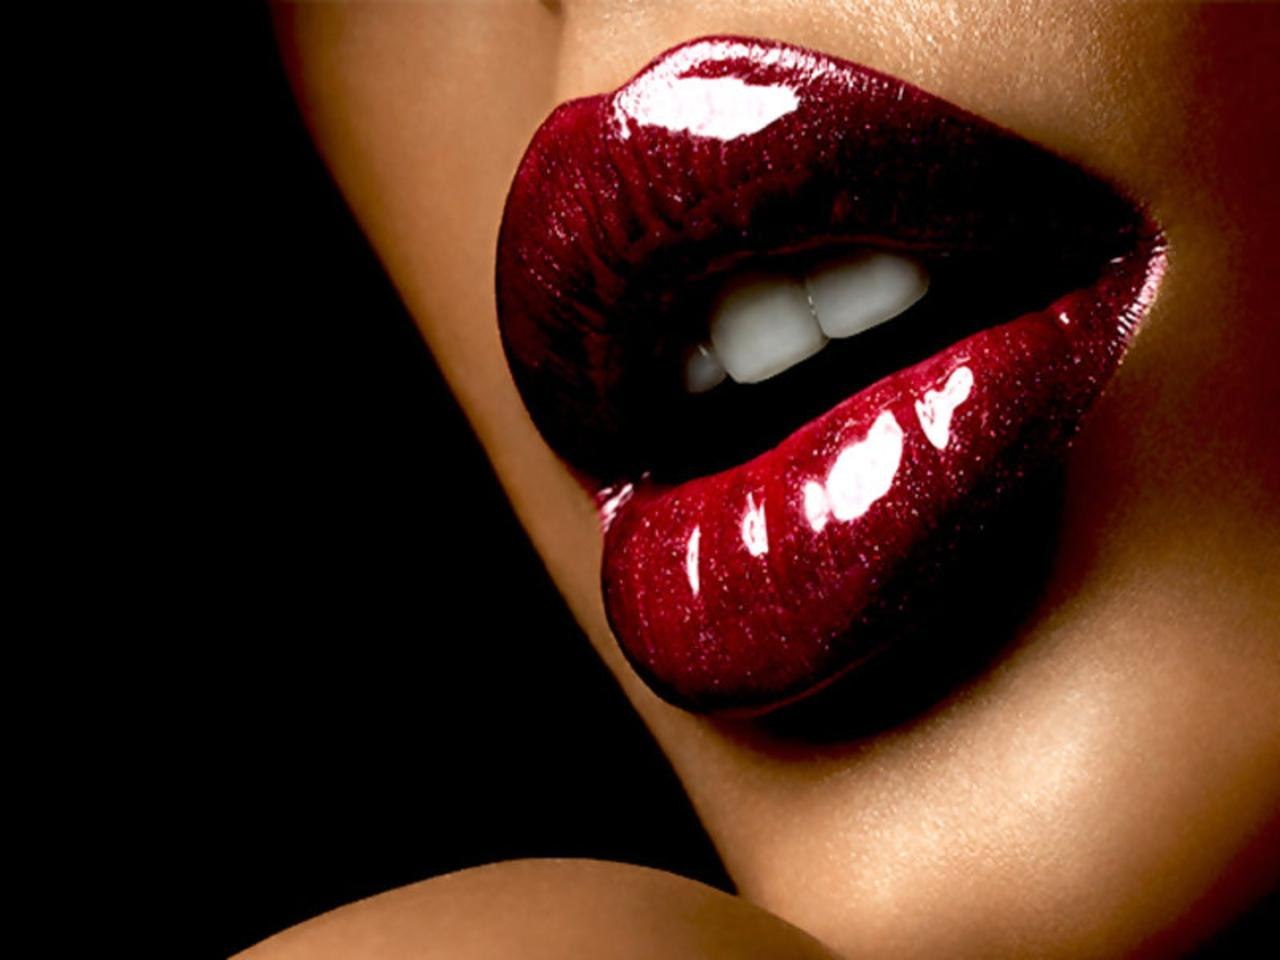 Lips Artistic wallpapers HD quality